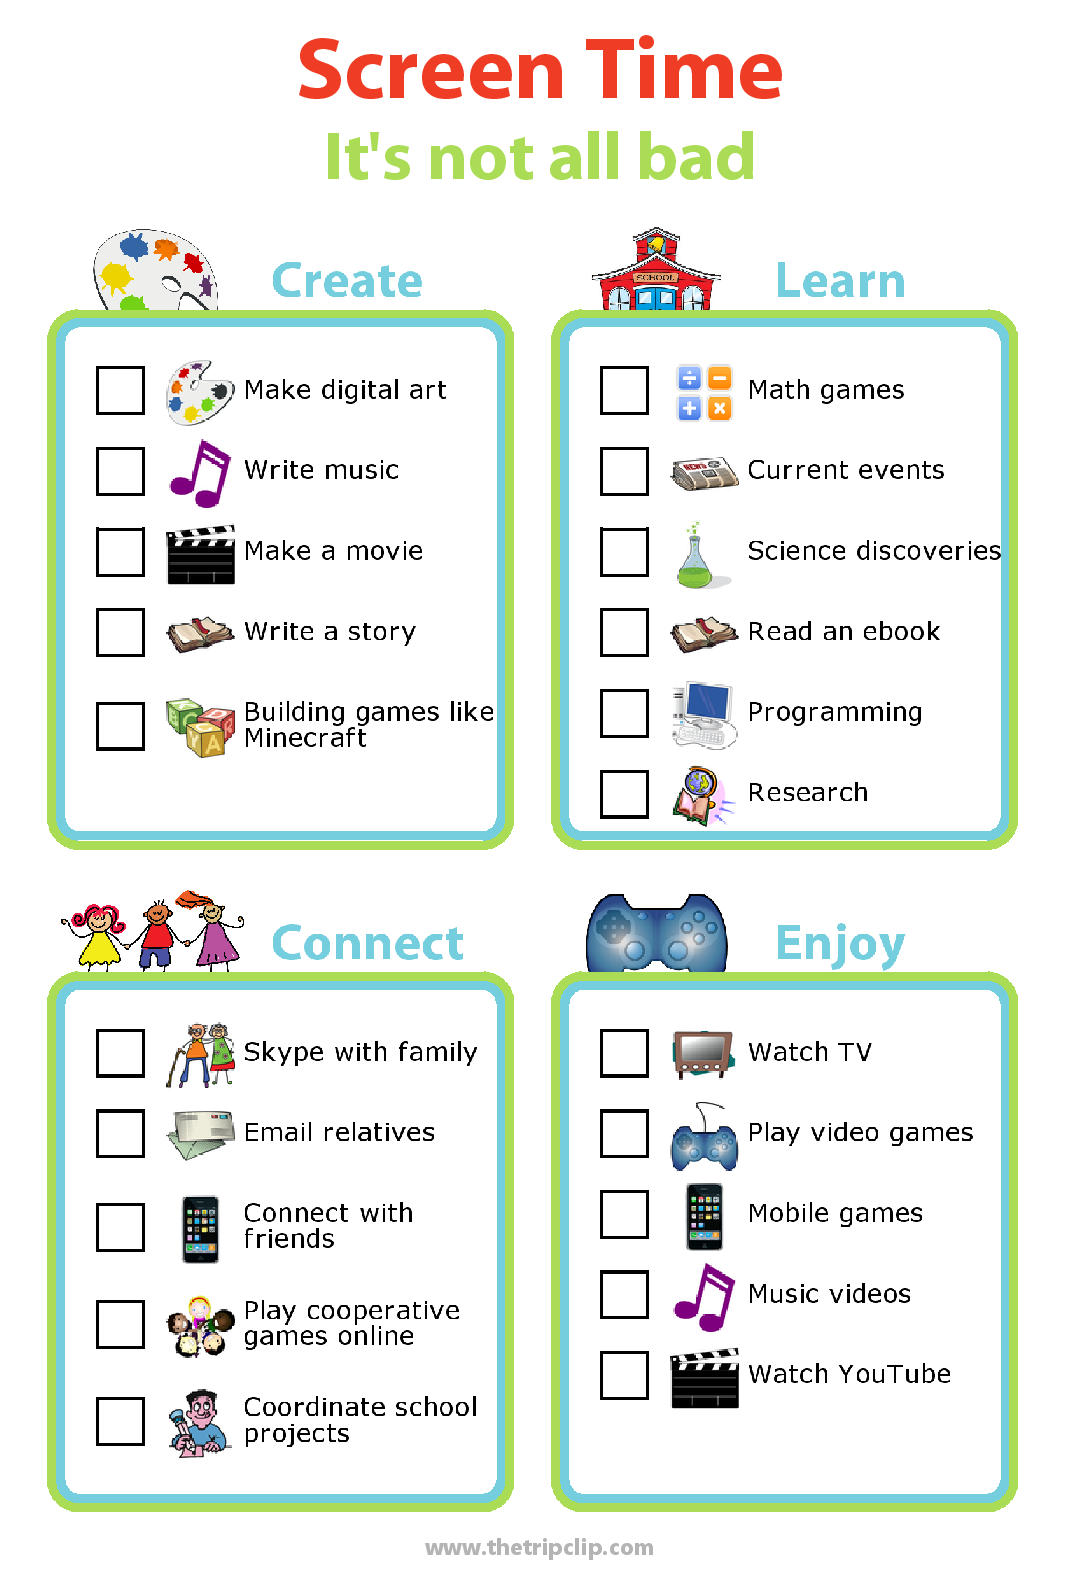 Picture checklists for optimizing screen time. Use screens to create, learn, connect, and entertain.